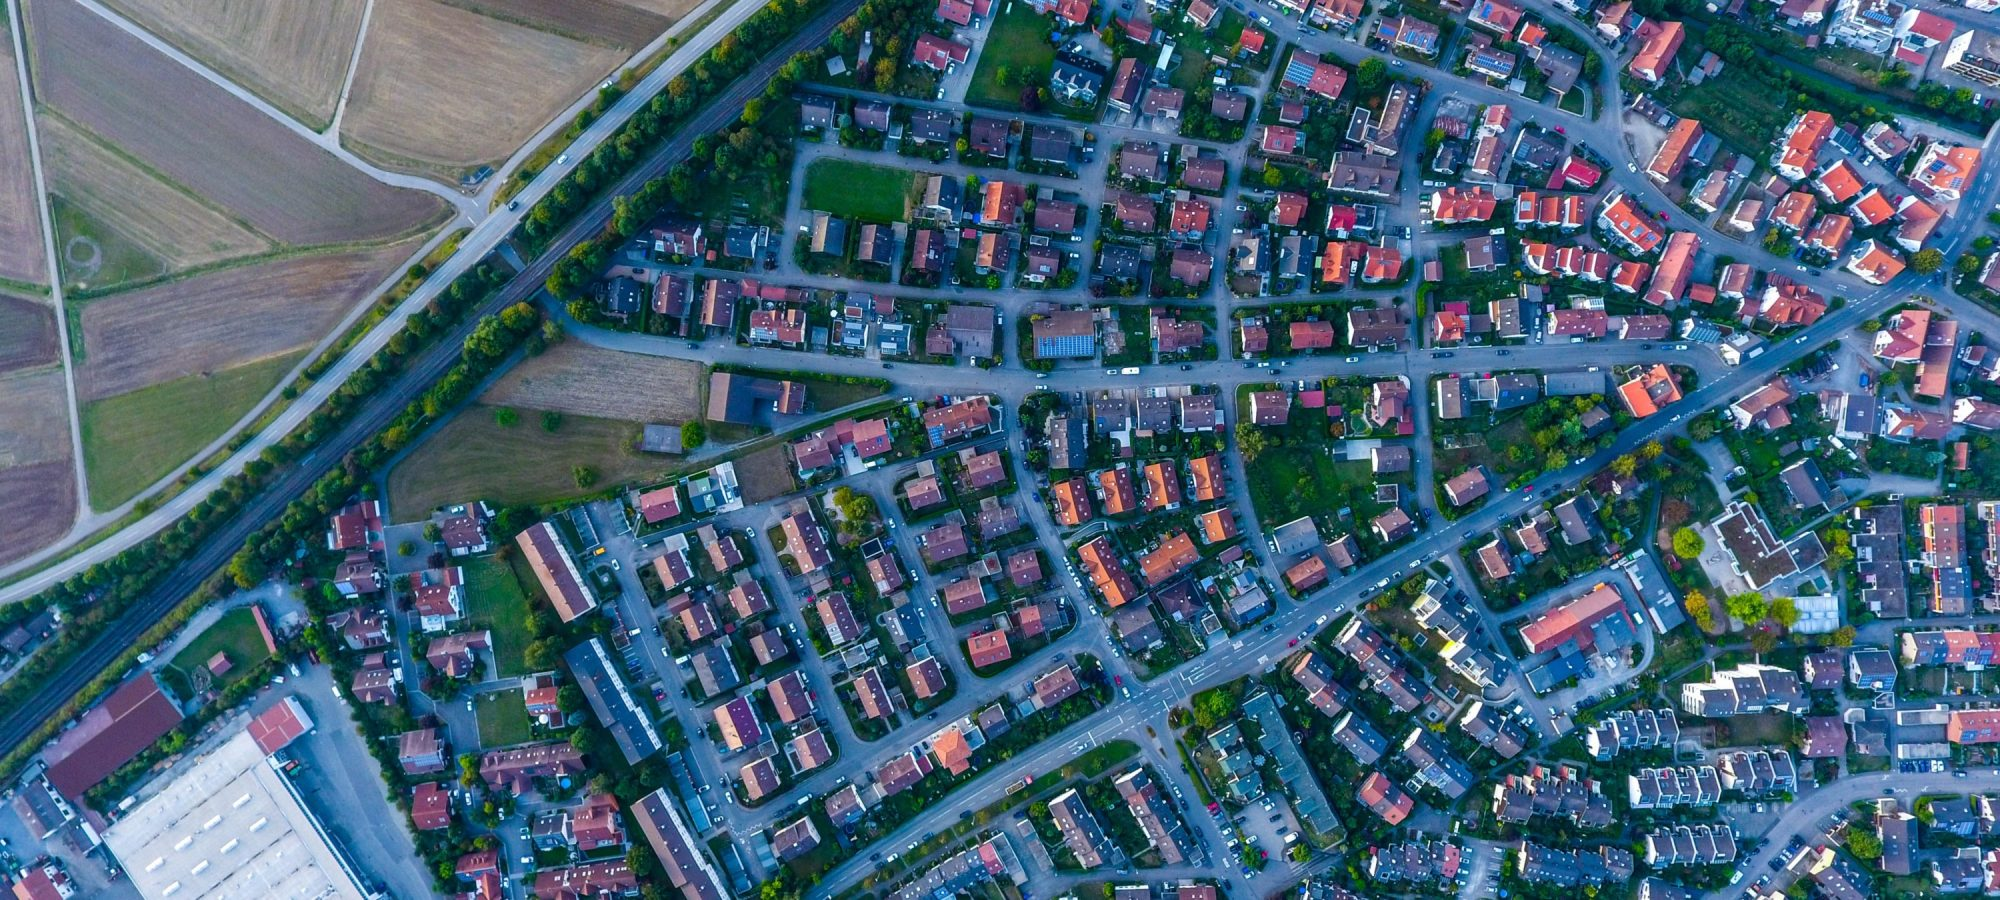 Policy for Greater<br>Housing Diversity